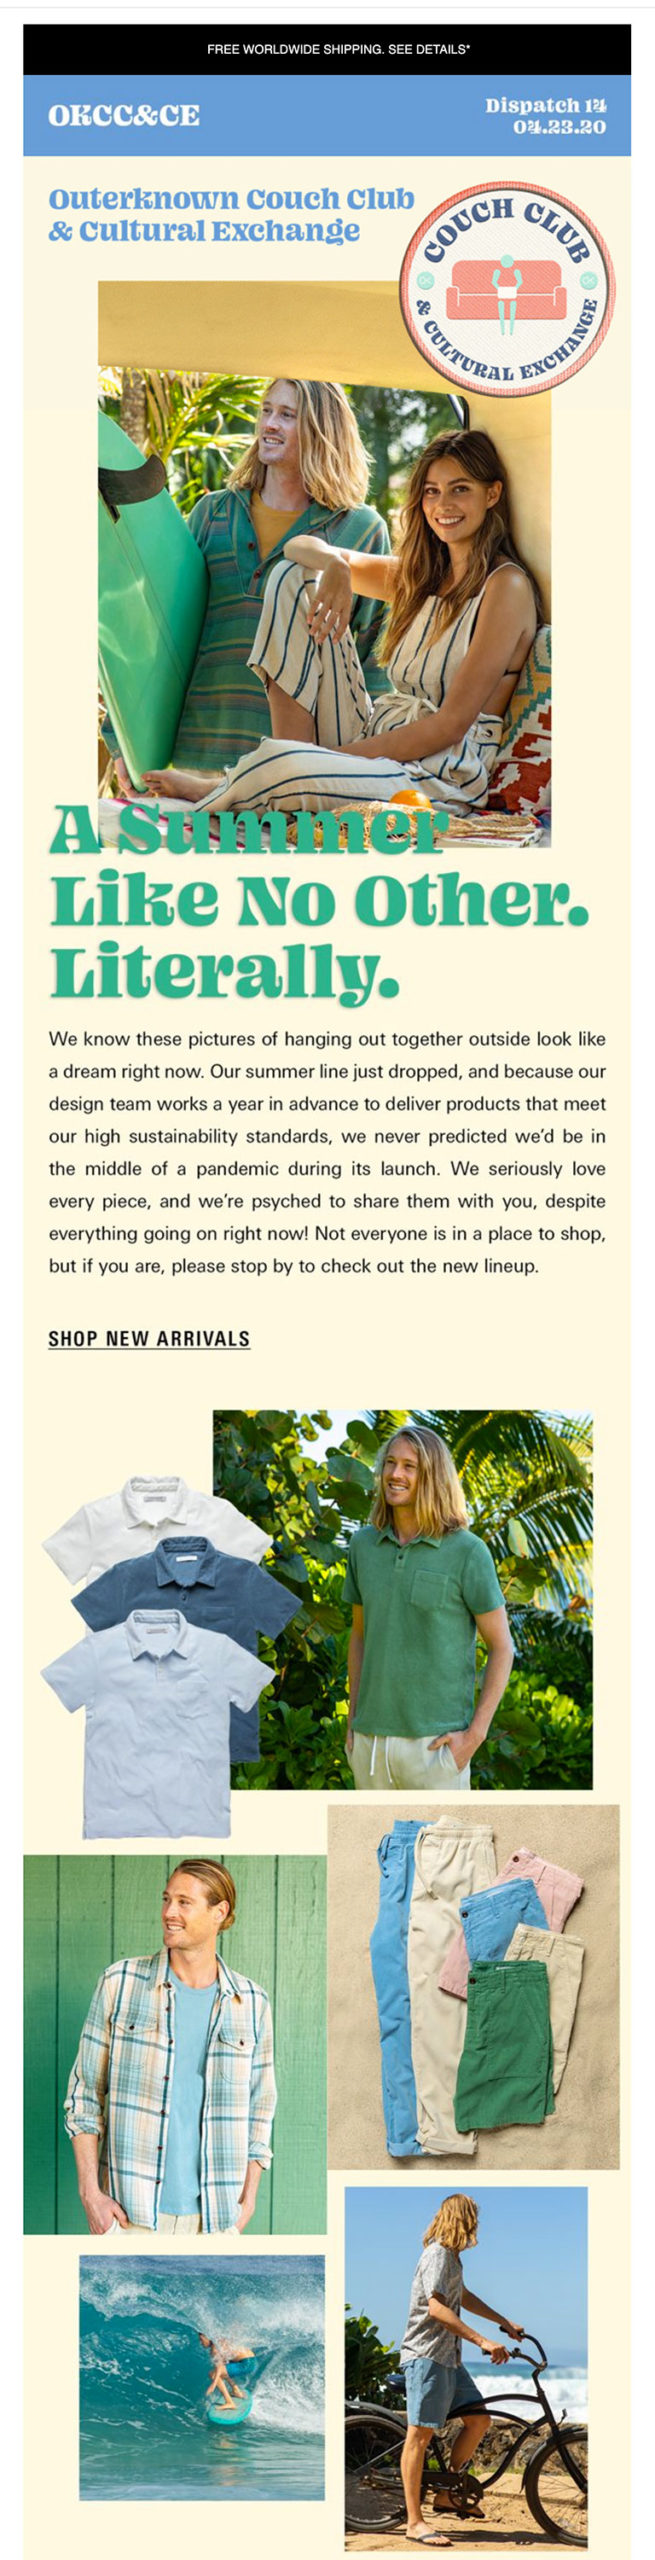 Outerknown shifts their summer product launch imagery.